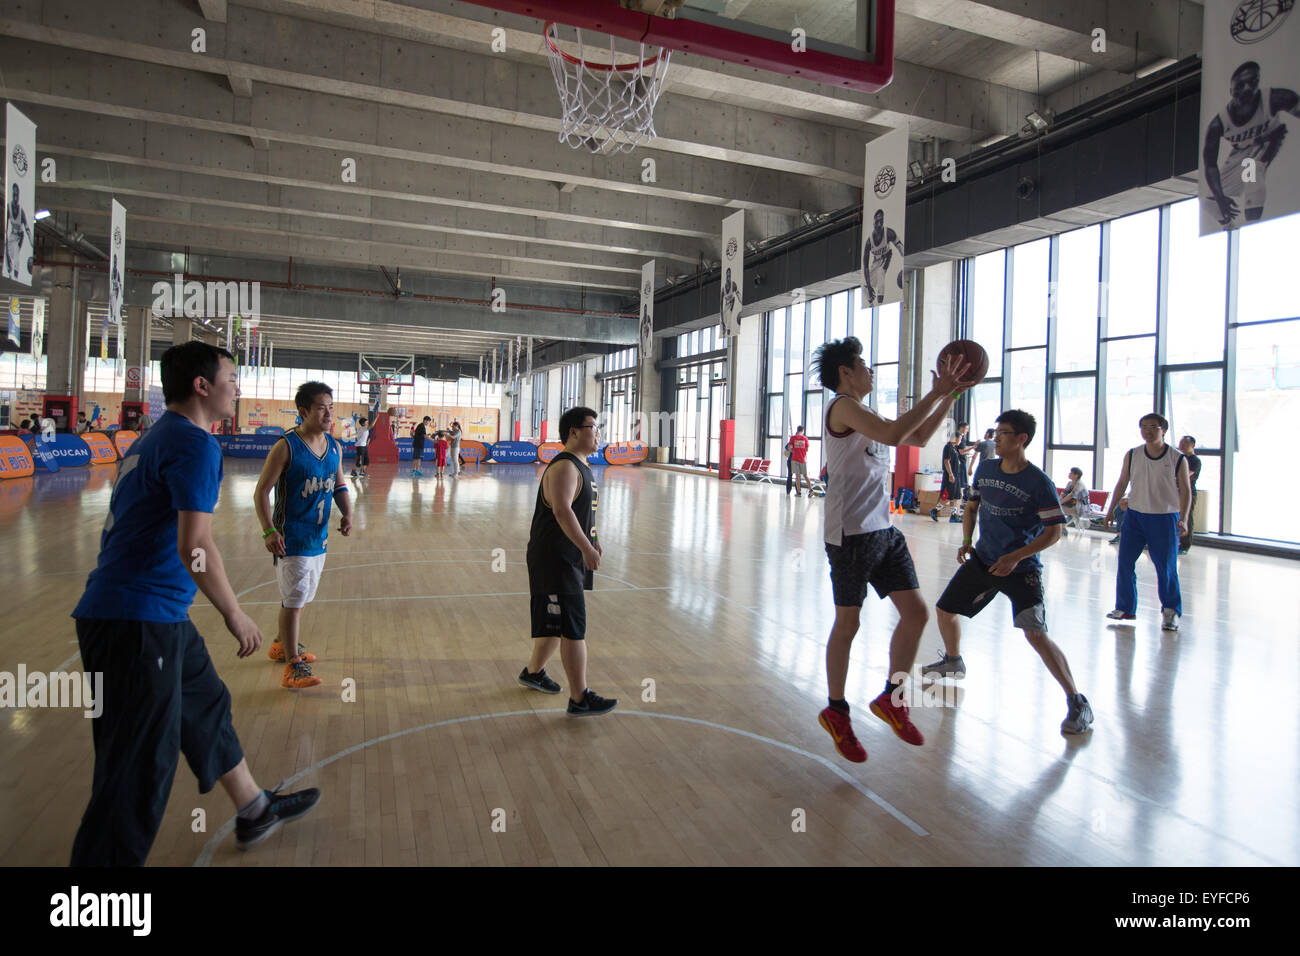 hi park basketball courts at wukesong arena in beijing china